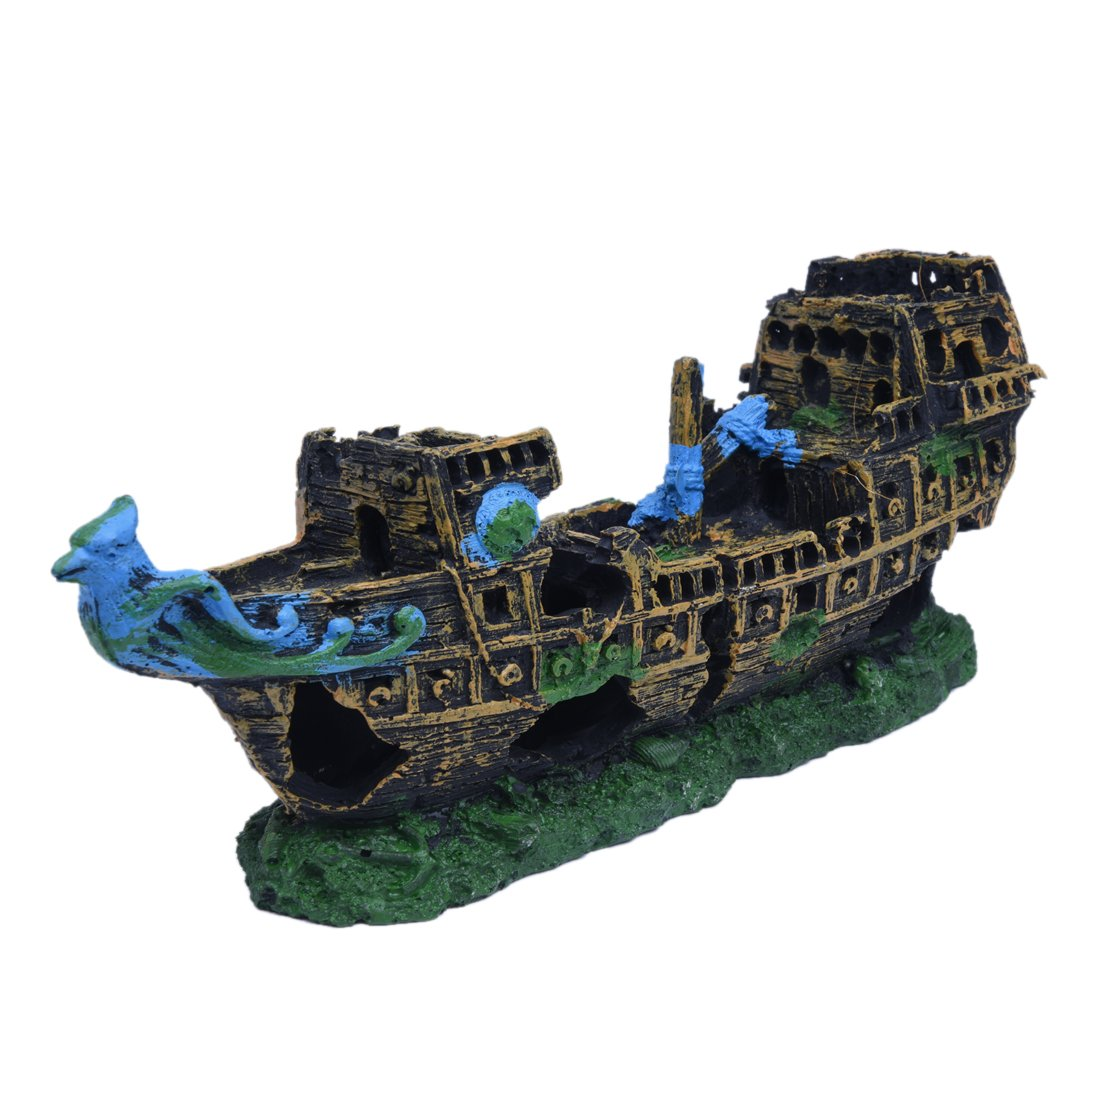 Decoration navire - SODIAL(R)Wreck Aquarium deco cruise ship shipwreck fish resin 24x9.5x6.5cm